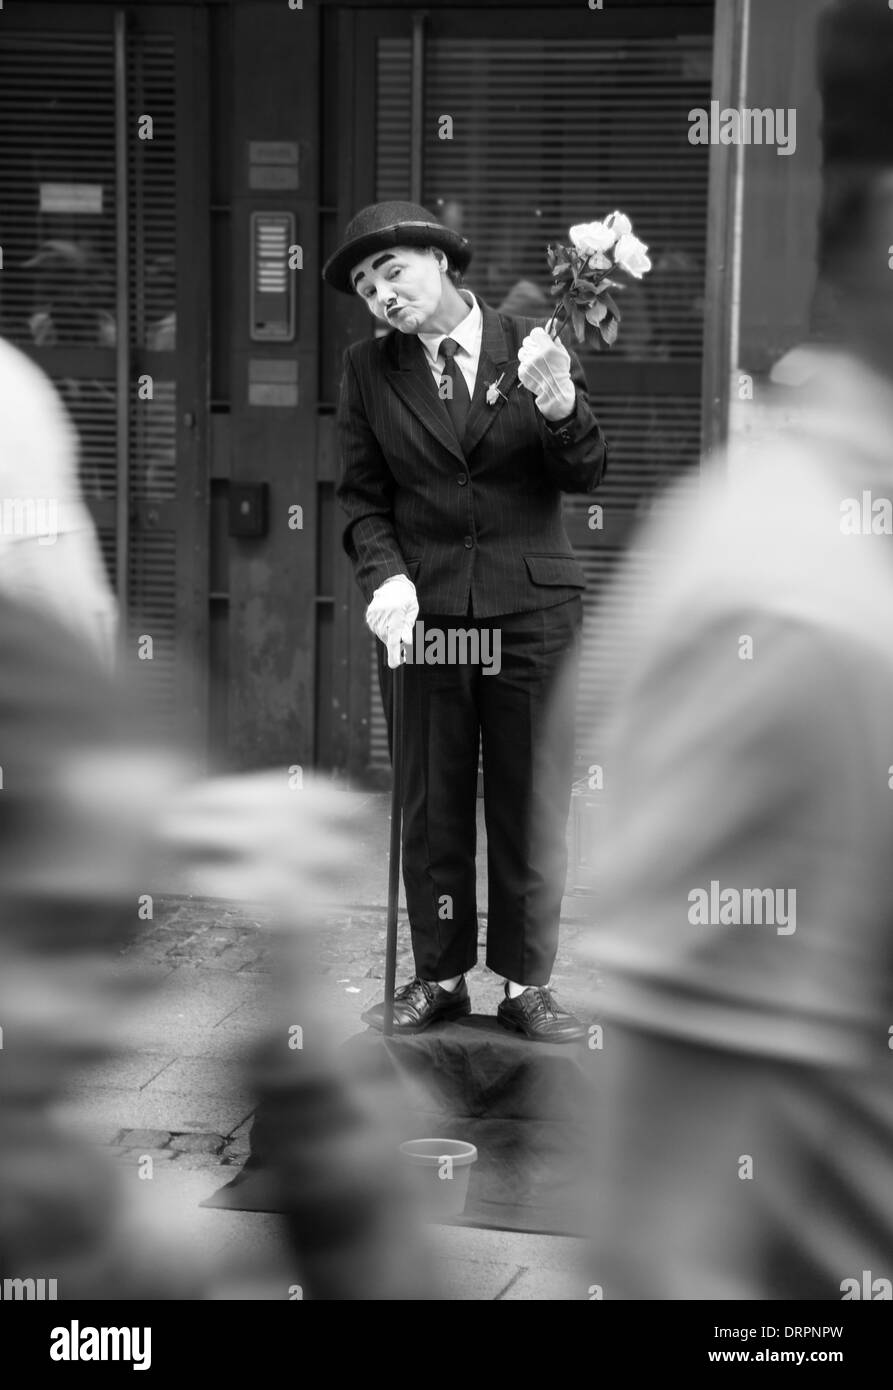 Charlie. Transience. Moment. - Stock Image